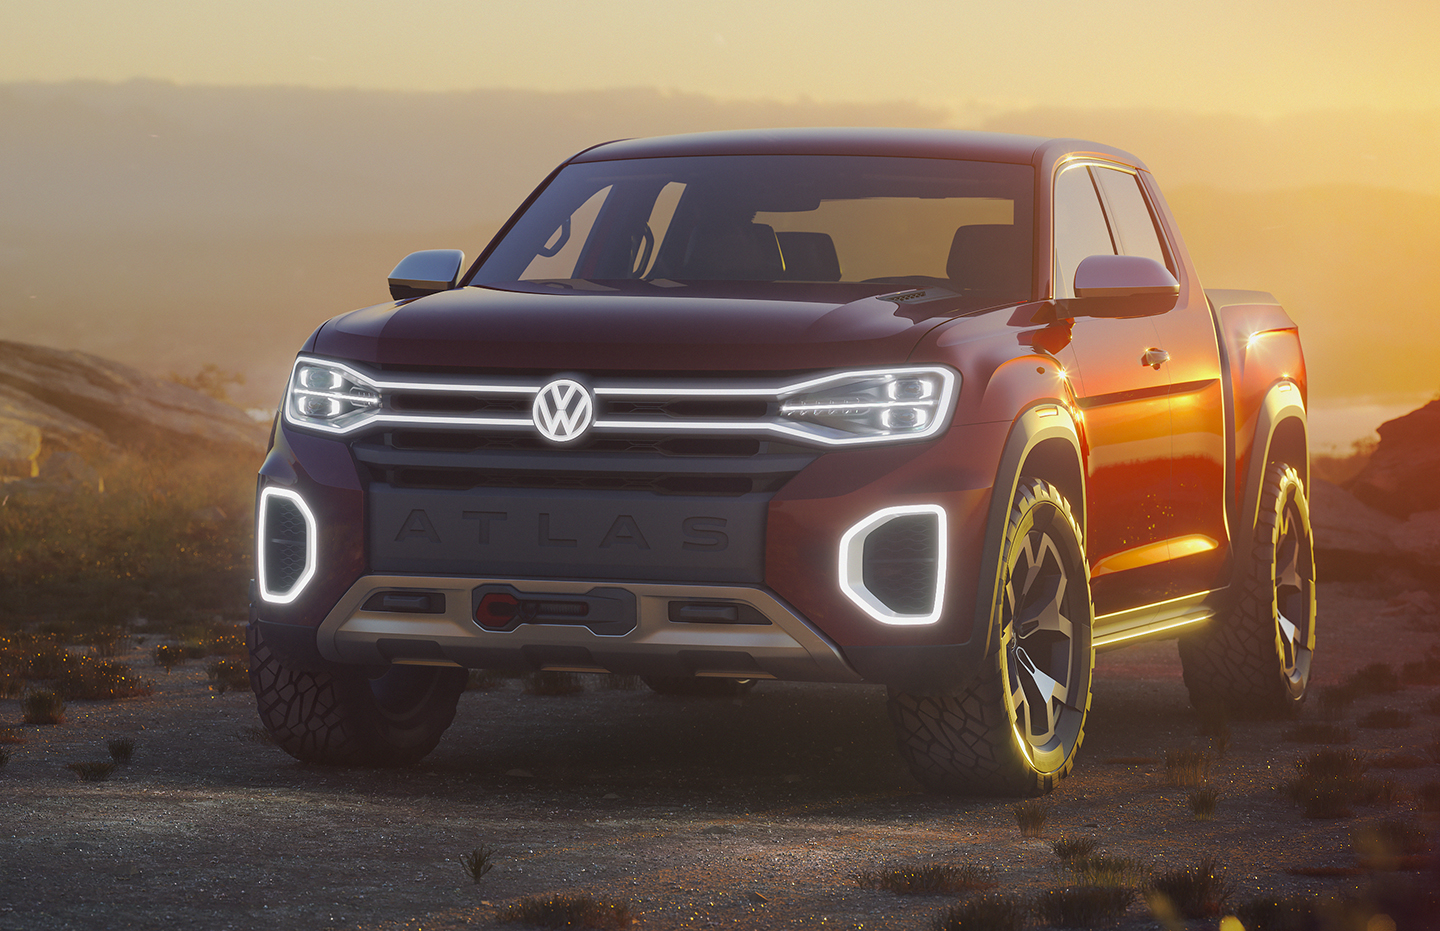 IS VW RE-ENTERING THE PICKUP MARKET? — the Atlas Tanoak pickup concept